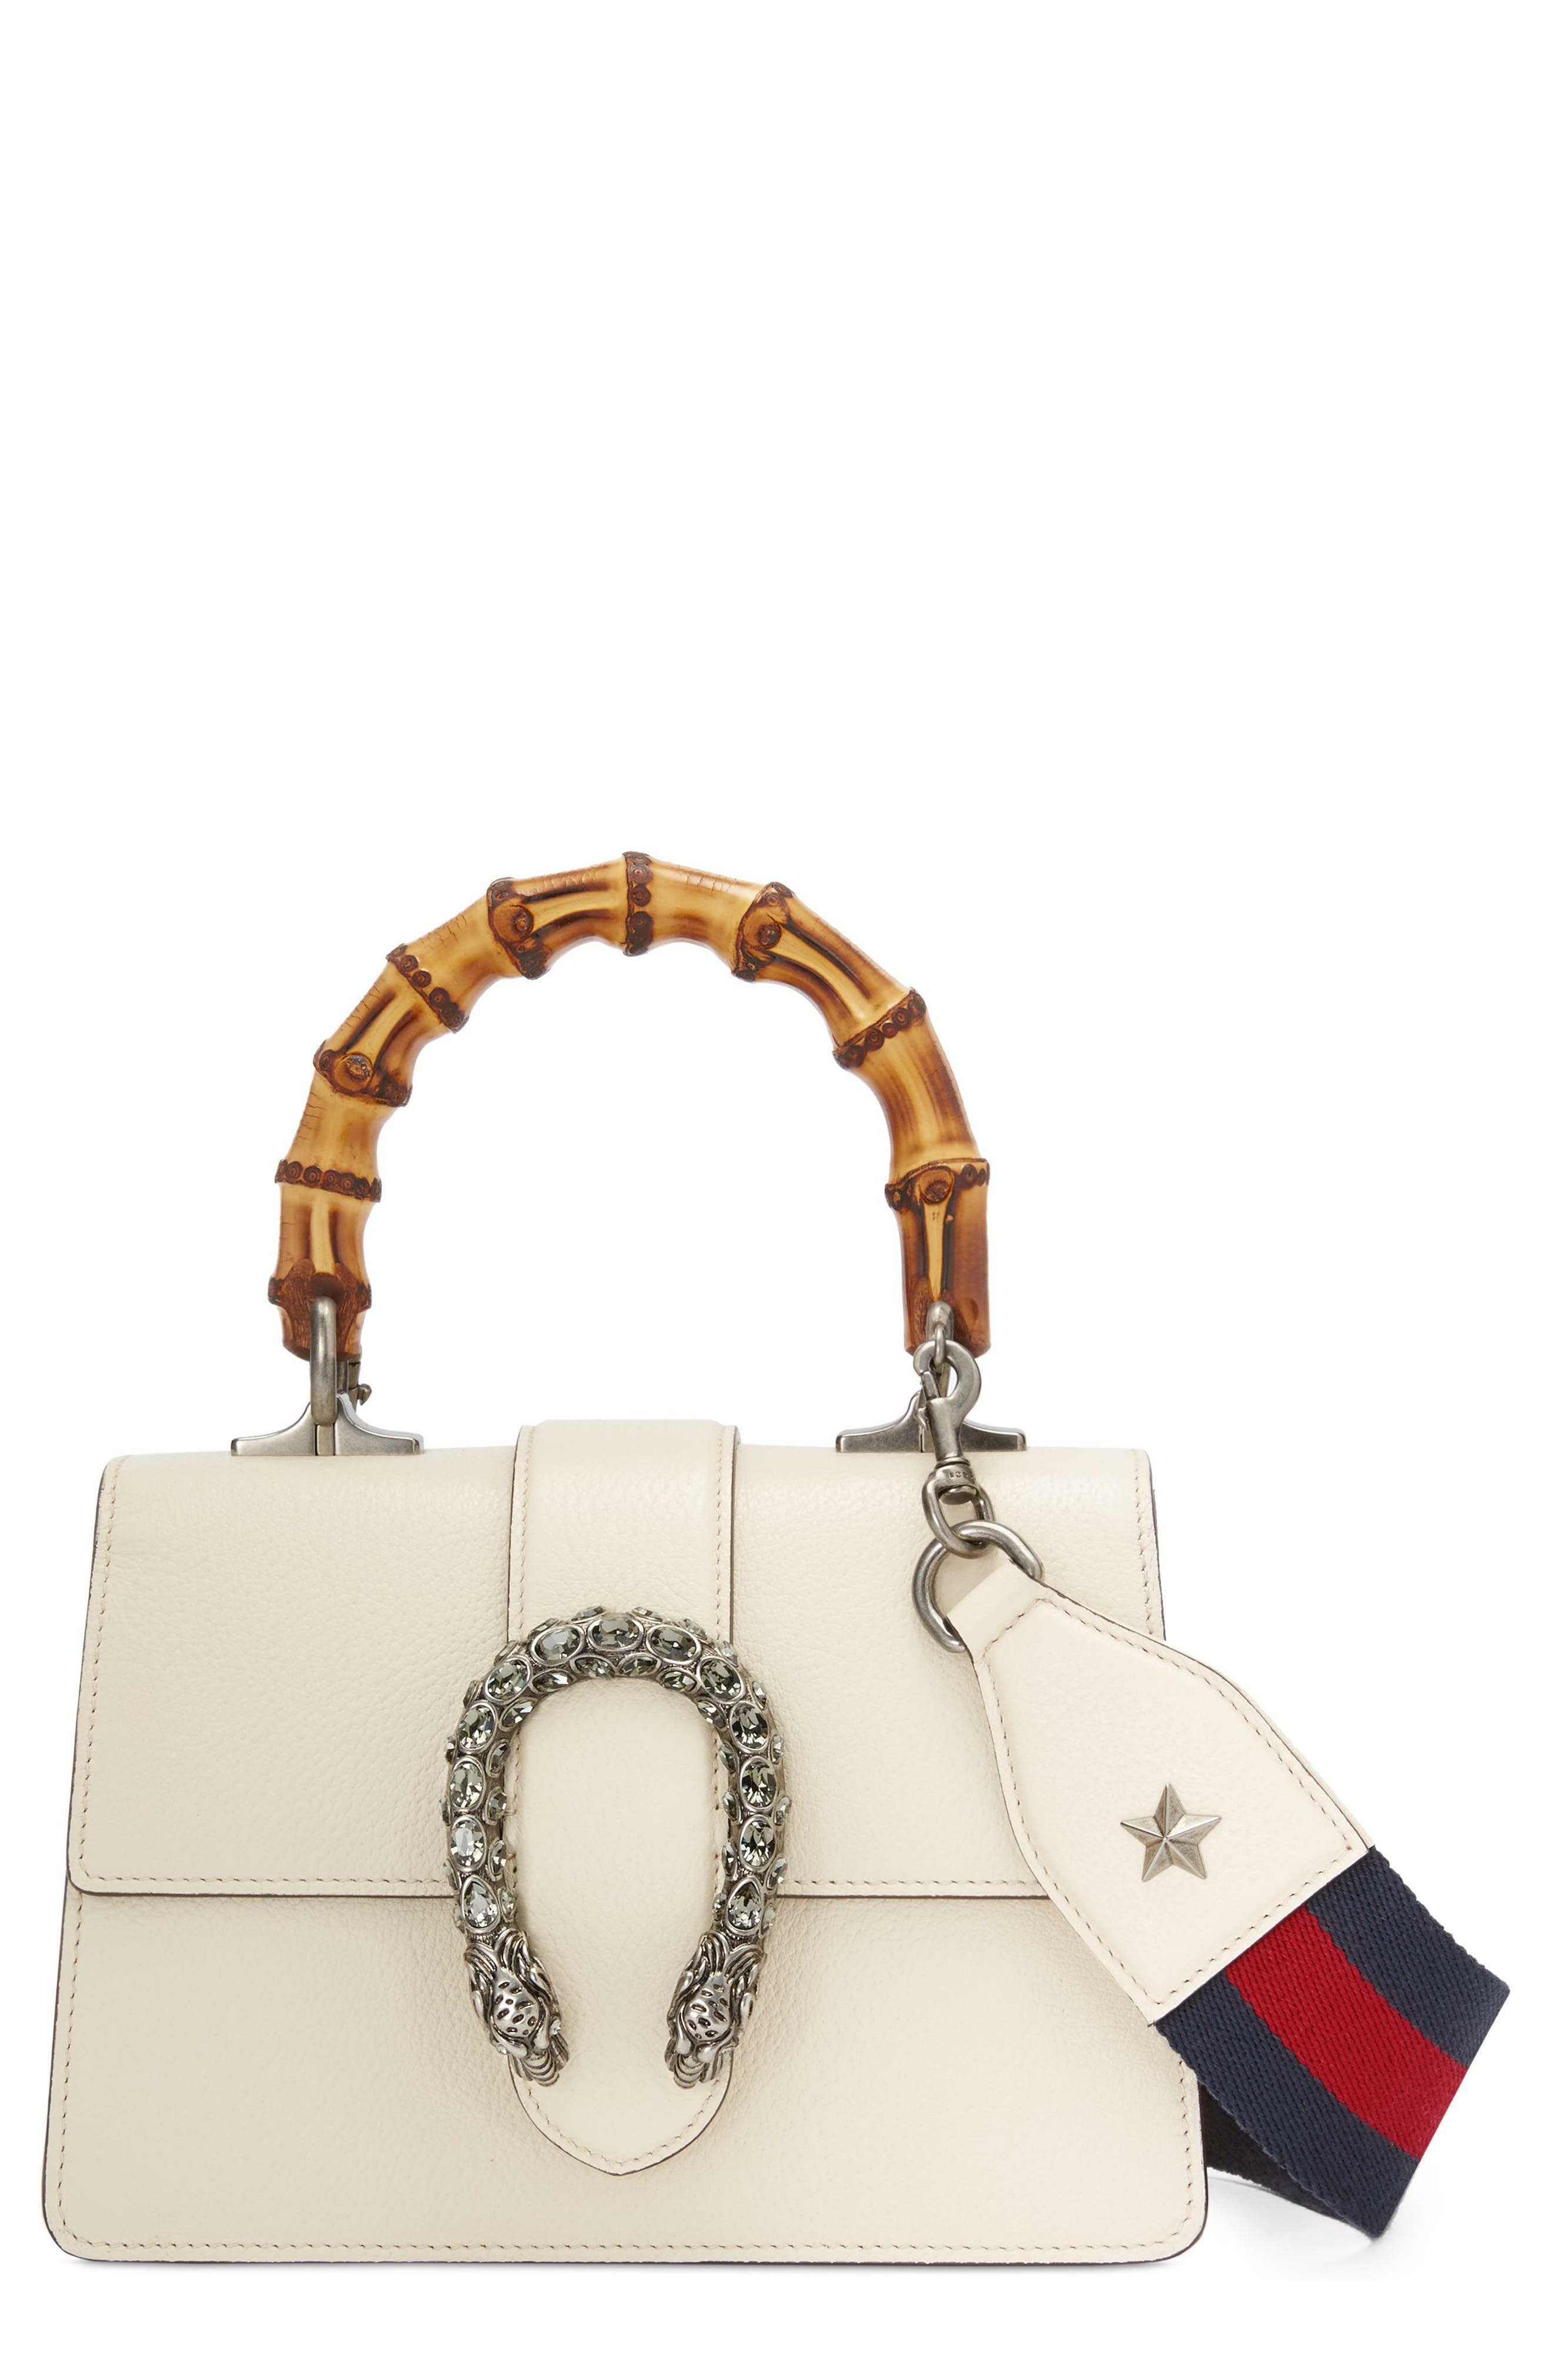 Mini Dionysus Leather Top Handle Satchel,                             Main thumbnail 1, color,                             IVORY/ BLUE/ RED/ BLACK